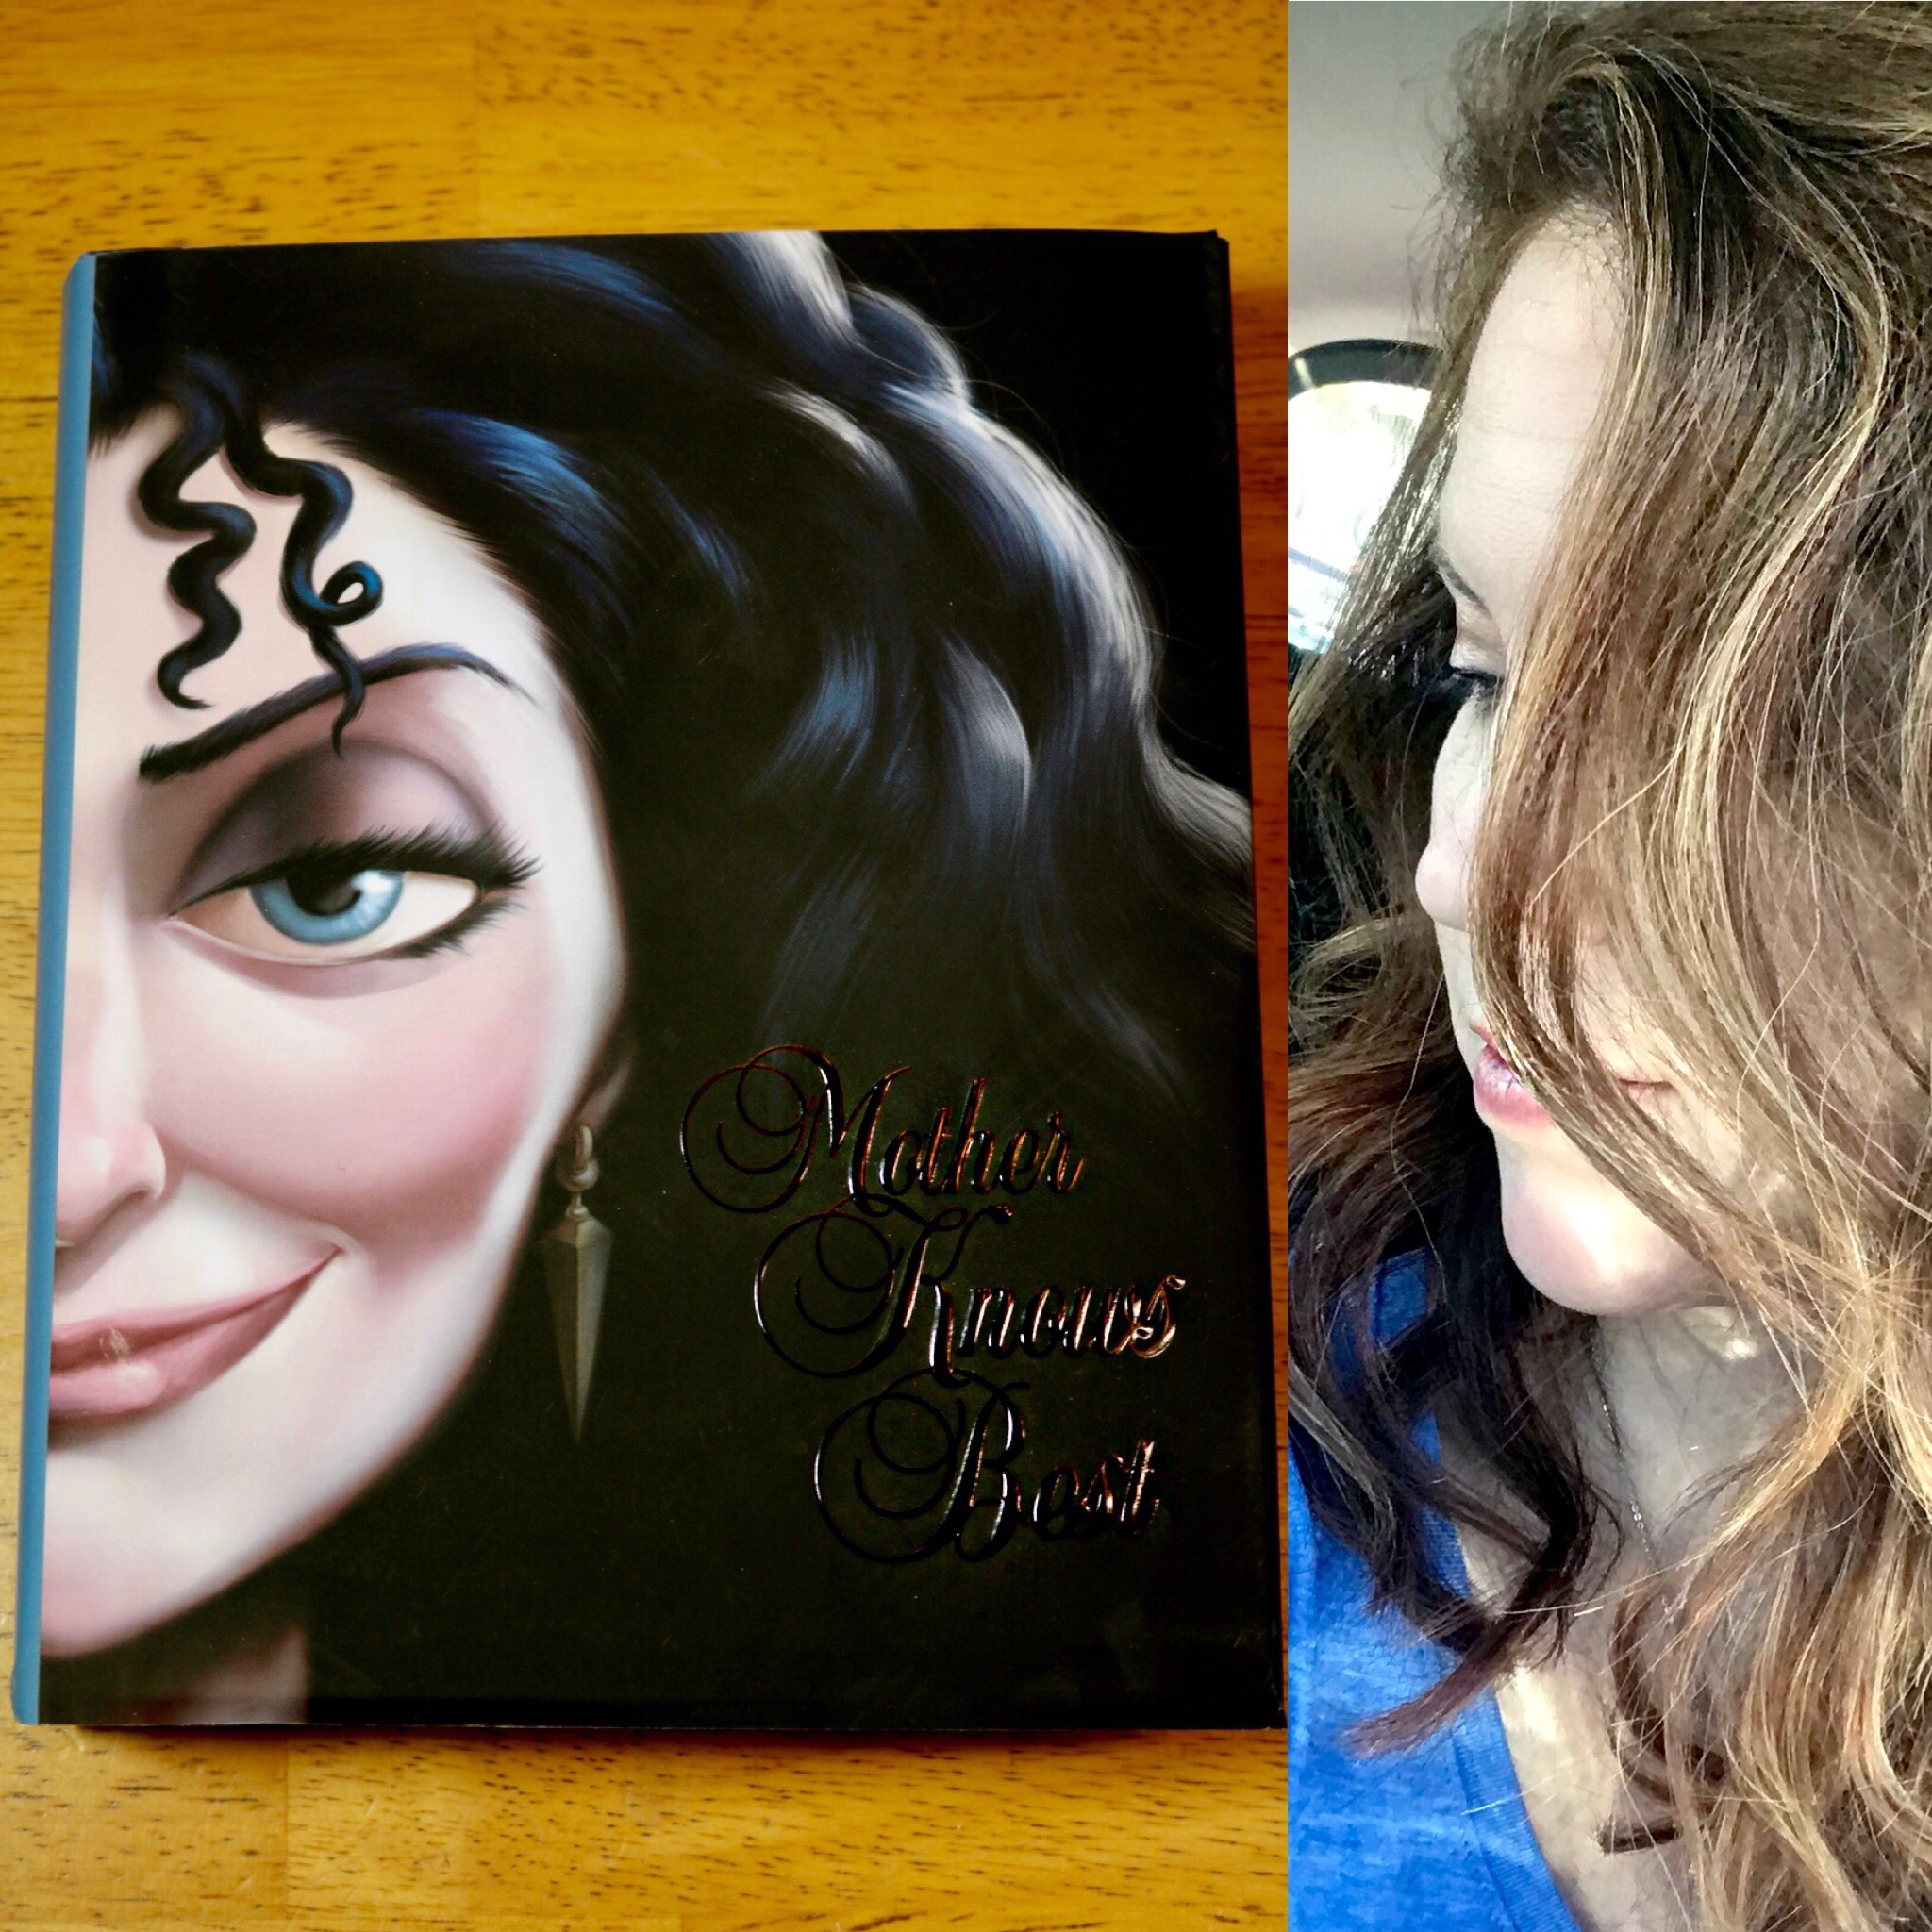 Mother Knows Best #MotherKnowsBest #DisneyVillainsBooks #books #disney #giveaway #beauty #hair #ad